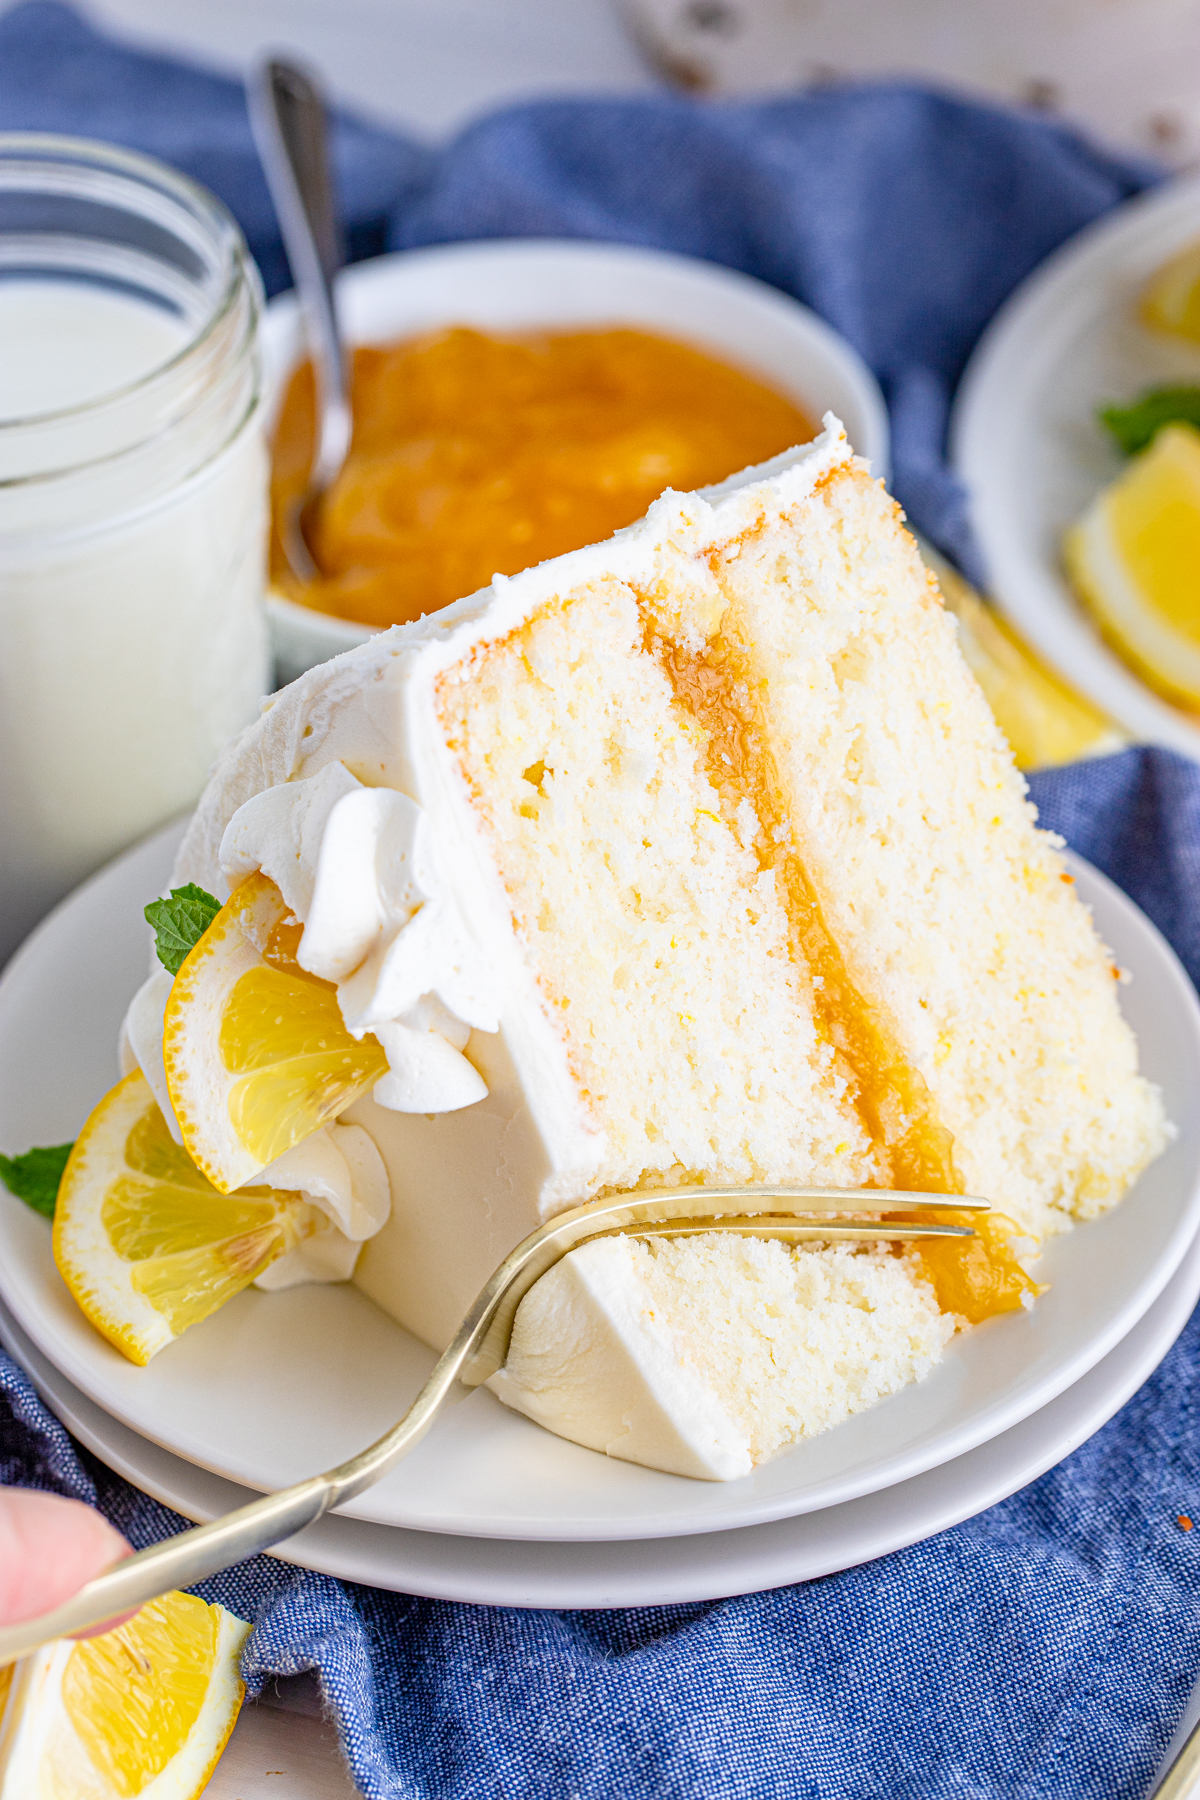 Fork Cutting a bite out of a slice of Lemon Layer Cake